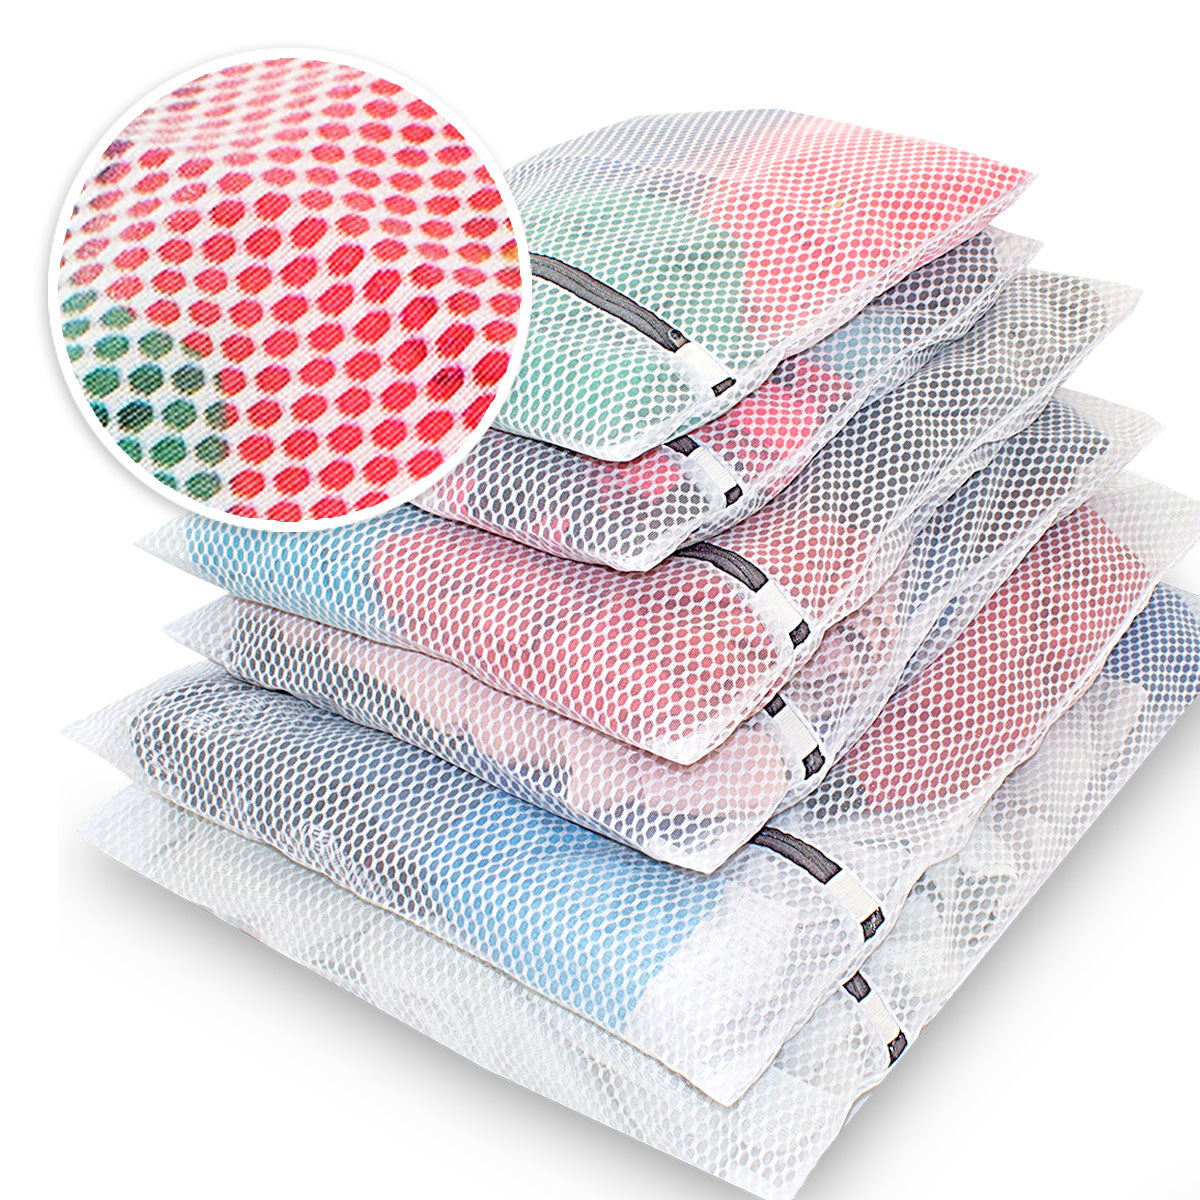 Knitial Honeycomb Laundry Mesh Bags Set of 6 Bags